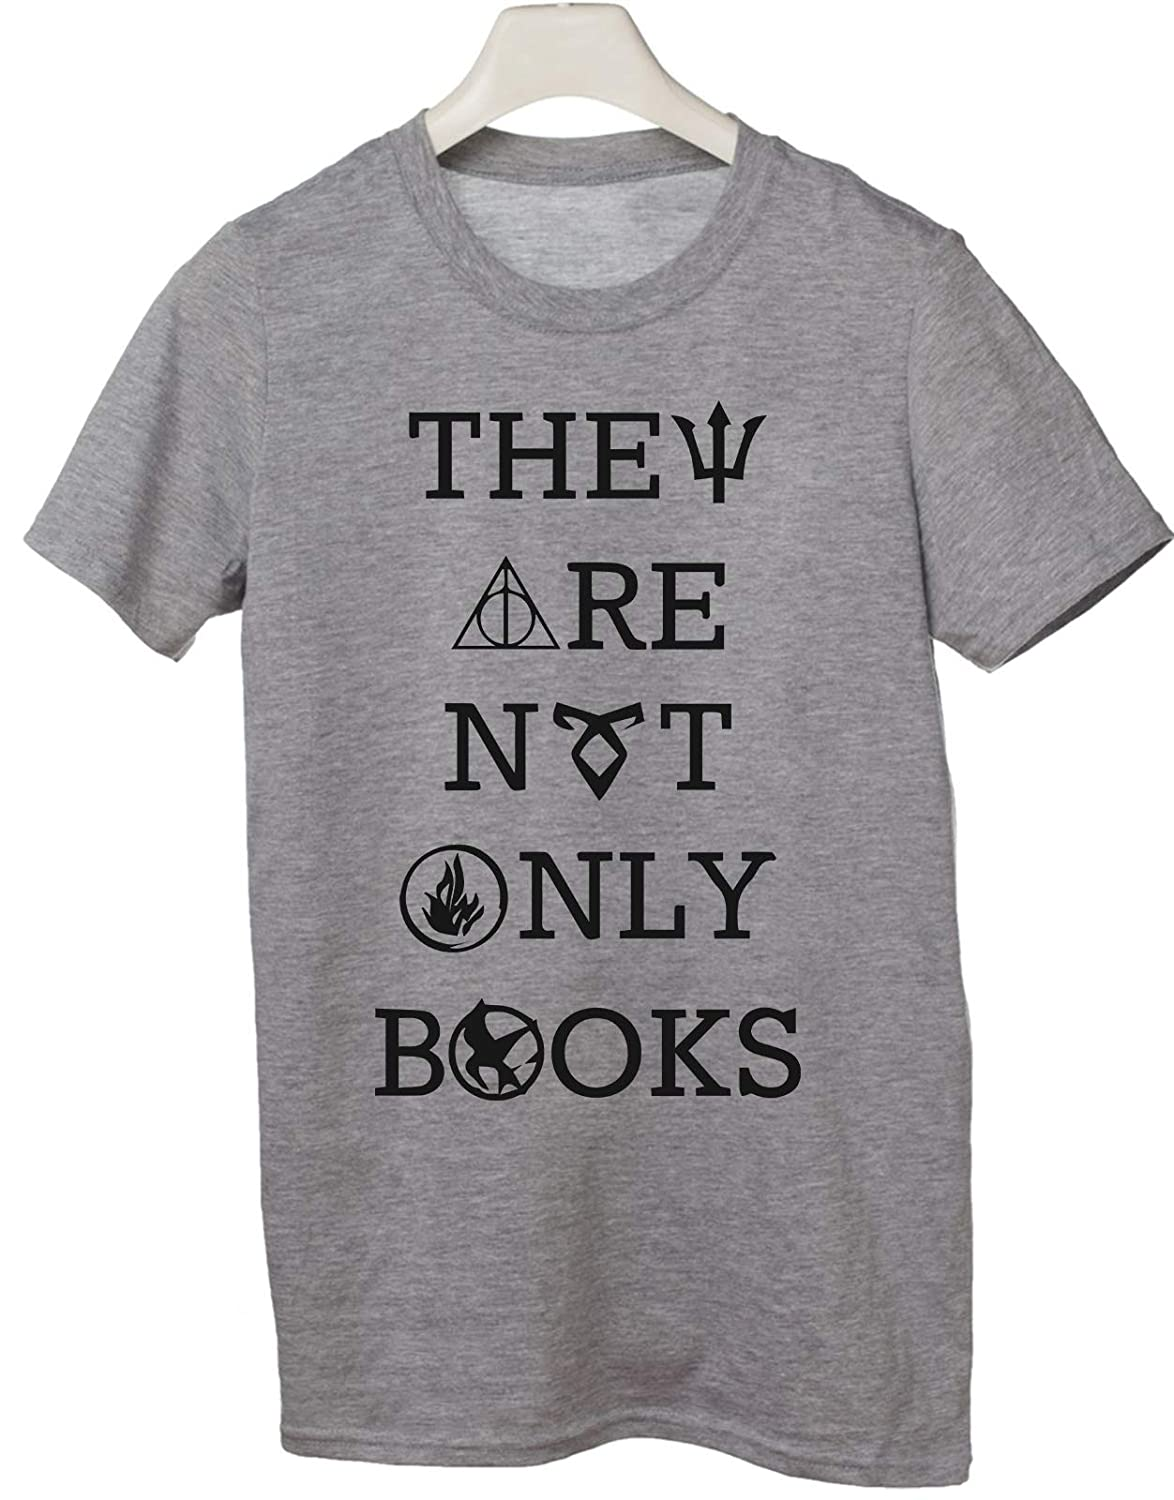 magia Tshirt Harry Potter They Are Not Only Books Wizard Hogwarts Humor